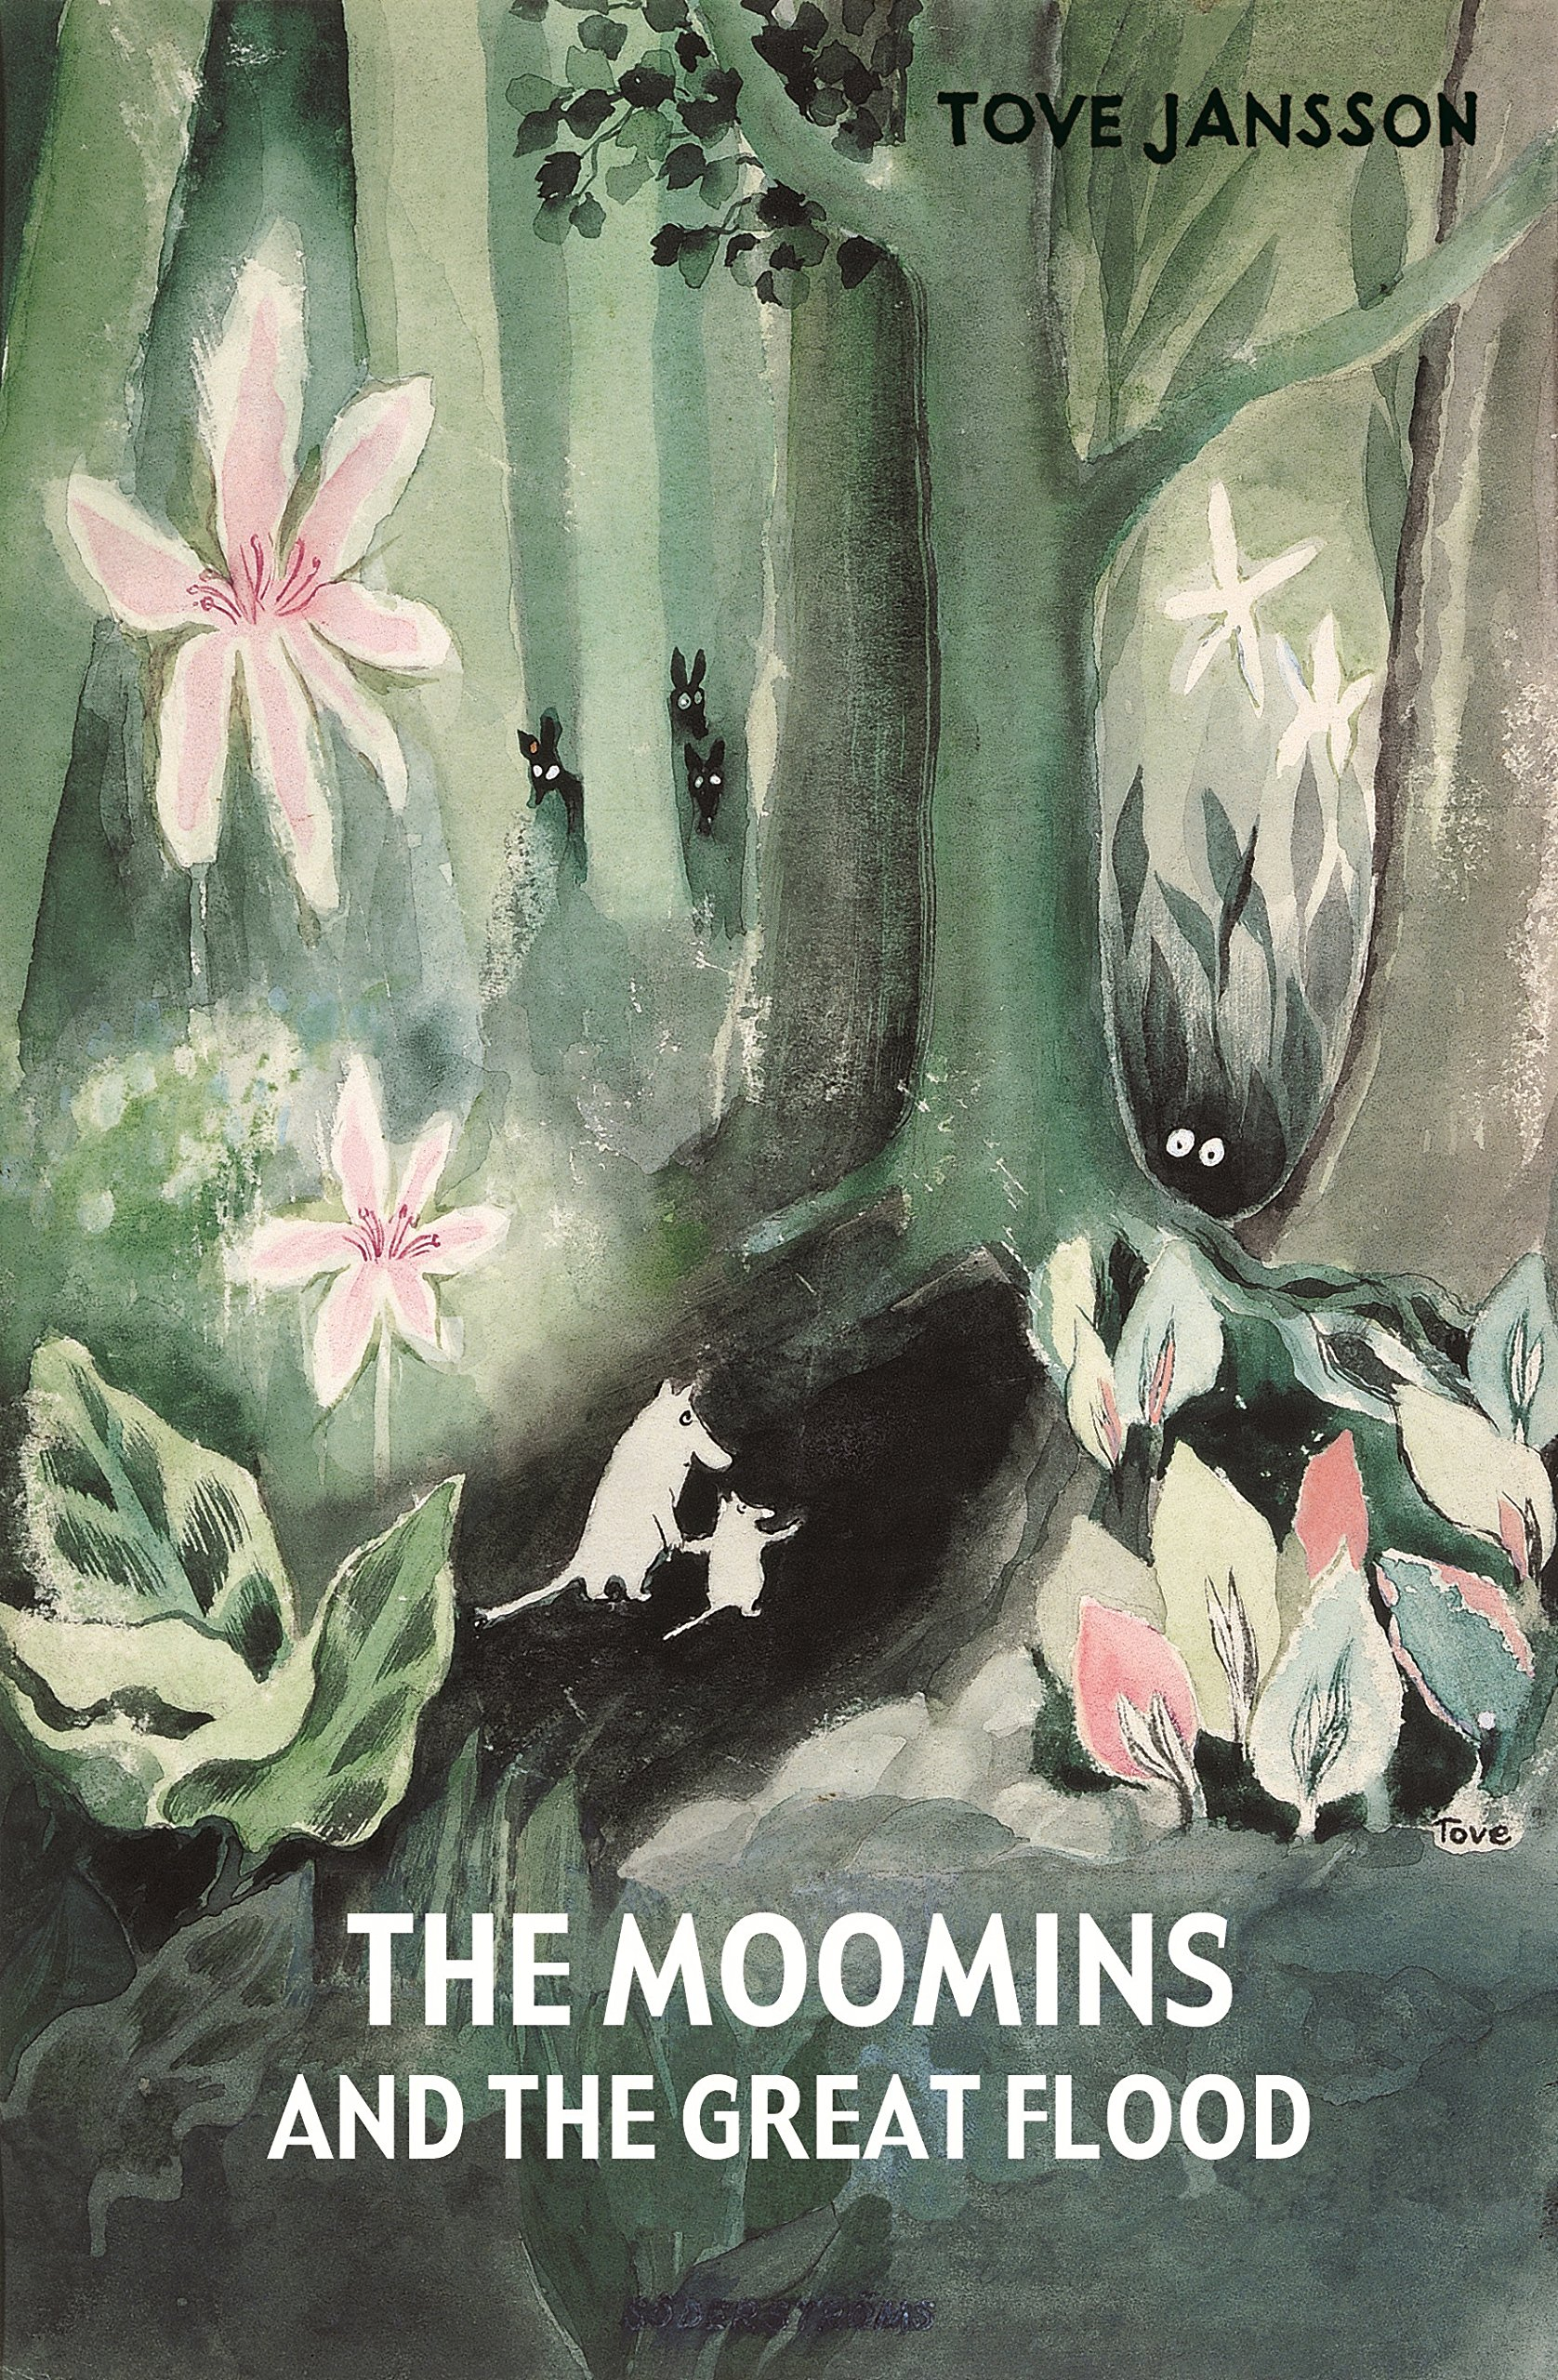 The Moomins And The Great Flood The Moomins 1 By Tove Jansson